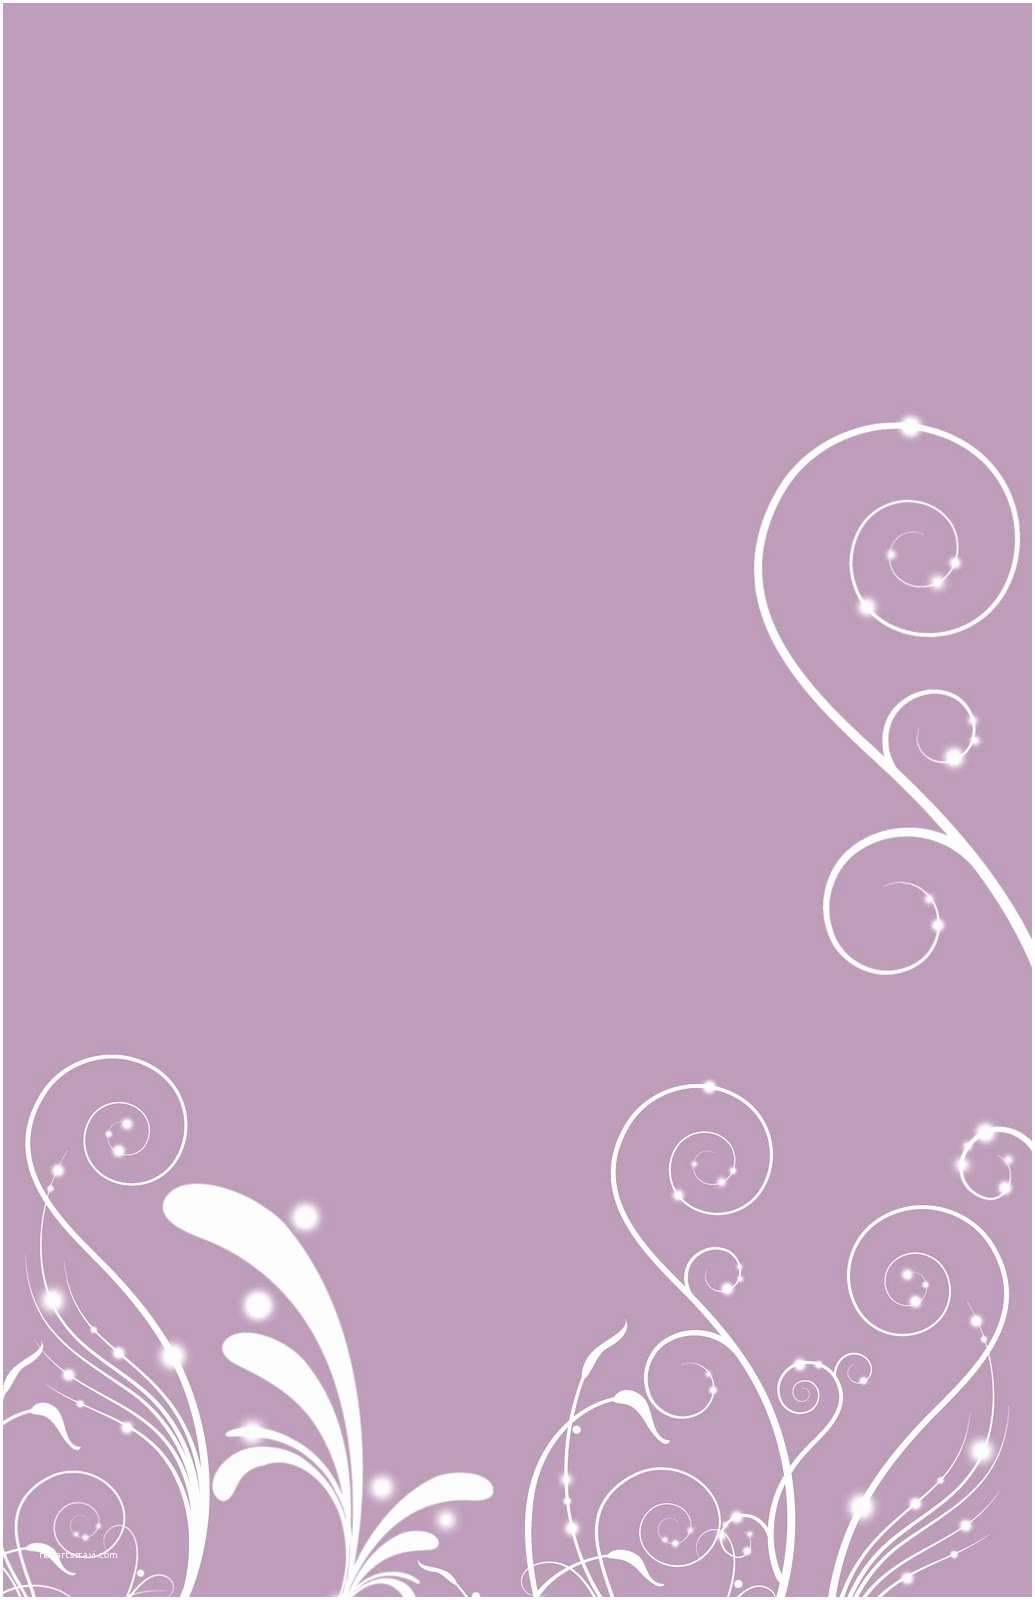 Wedding Invitation Background Elegant and Beautiful Wedding Invitations for Free Spring